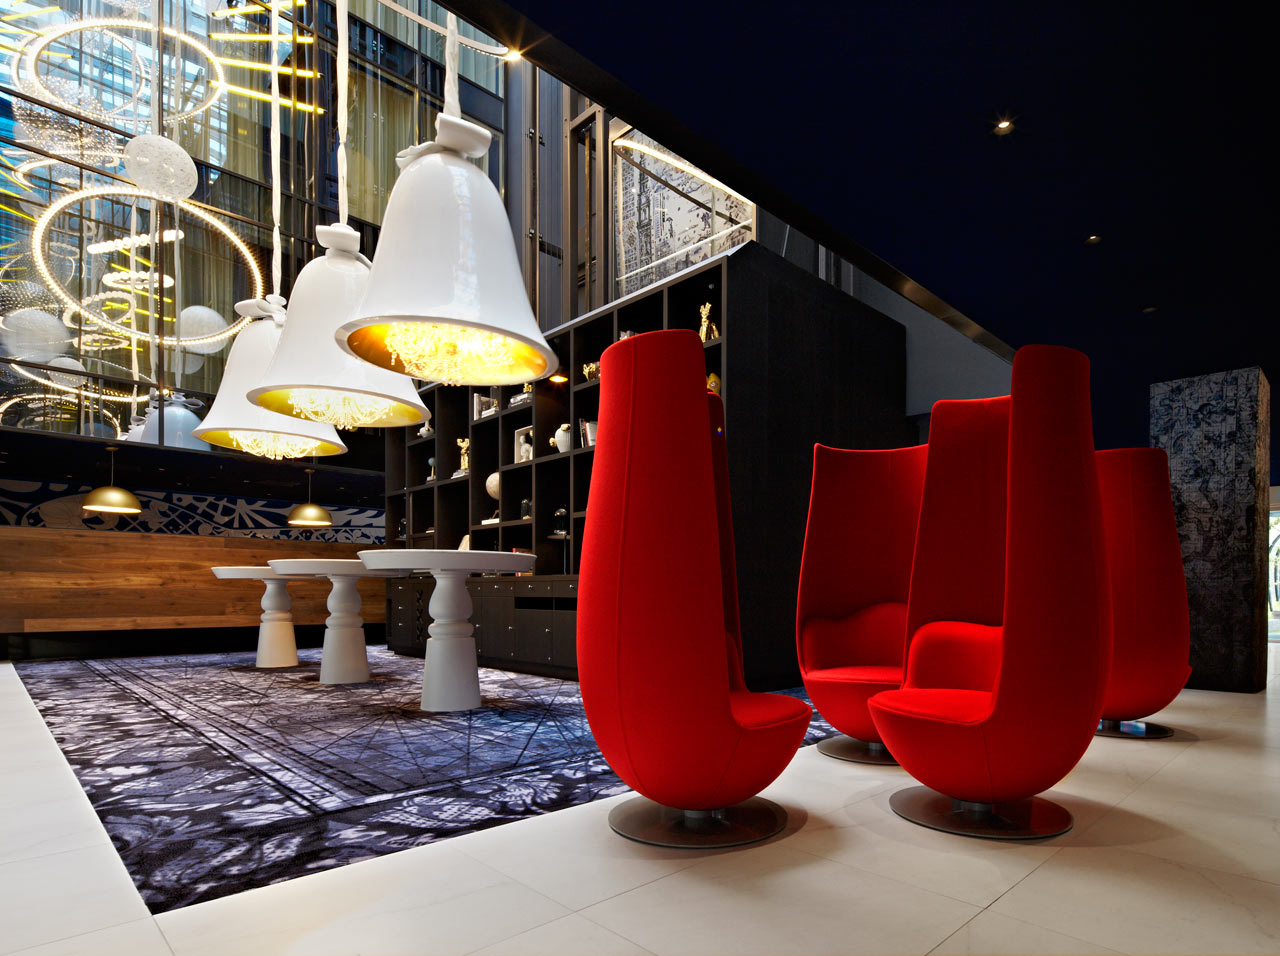 Interior Design Main Travel A Modern Hotel In Amsterdam With Dutch History